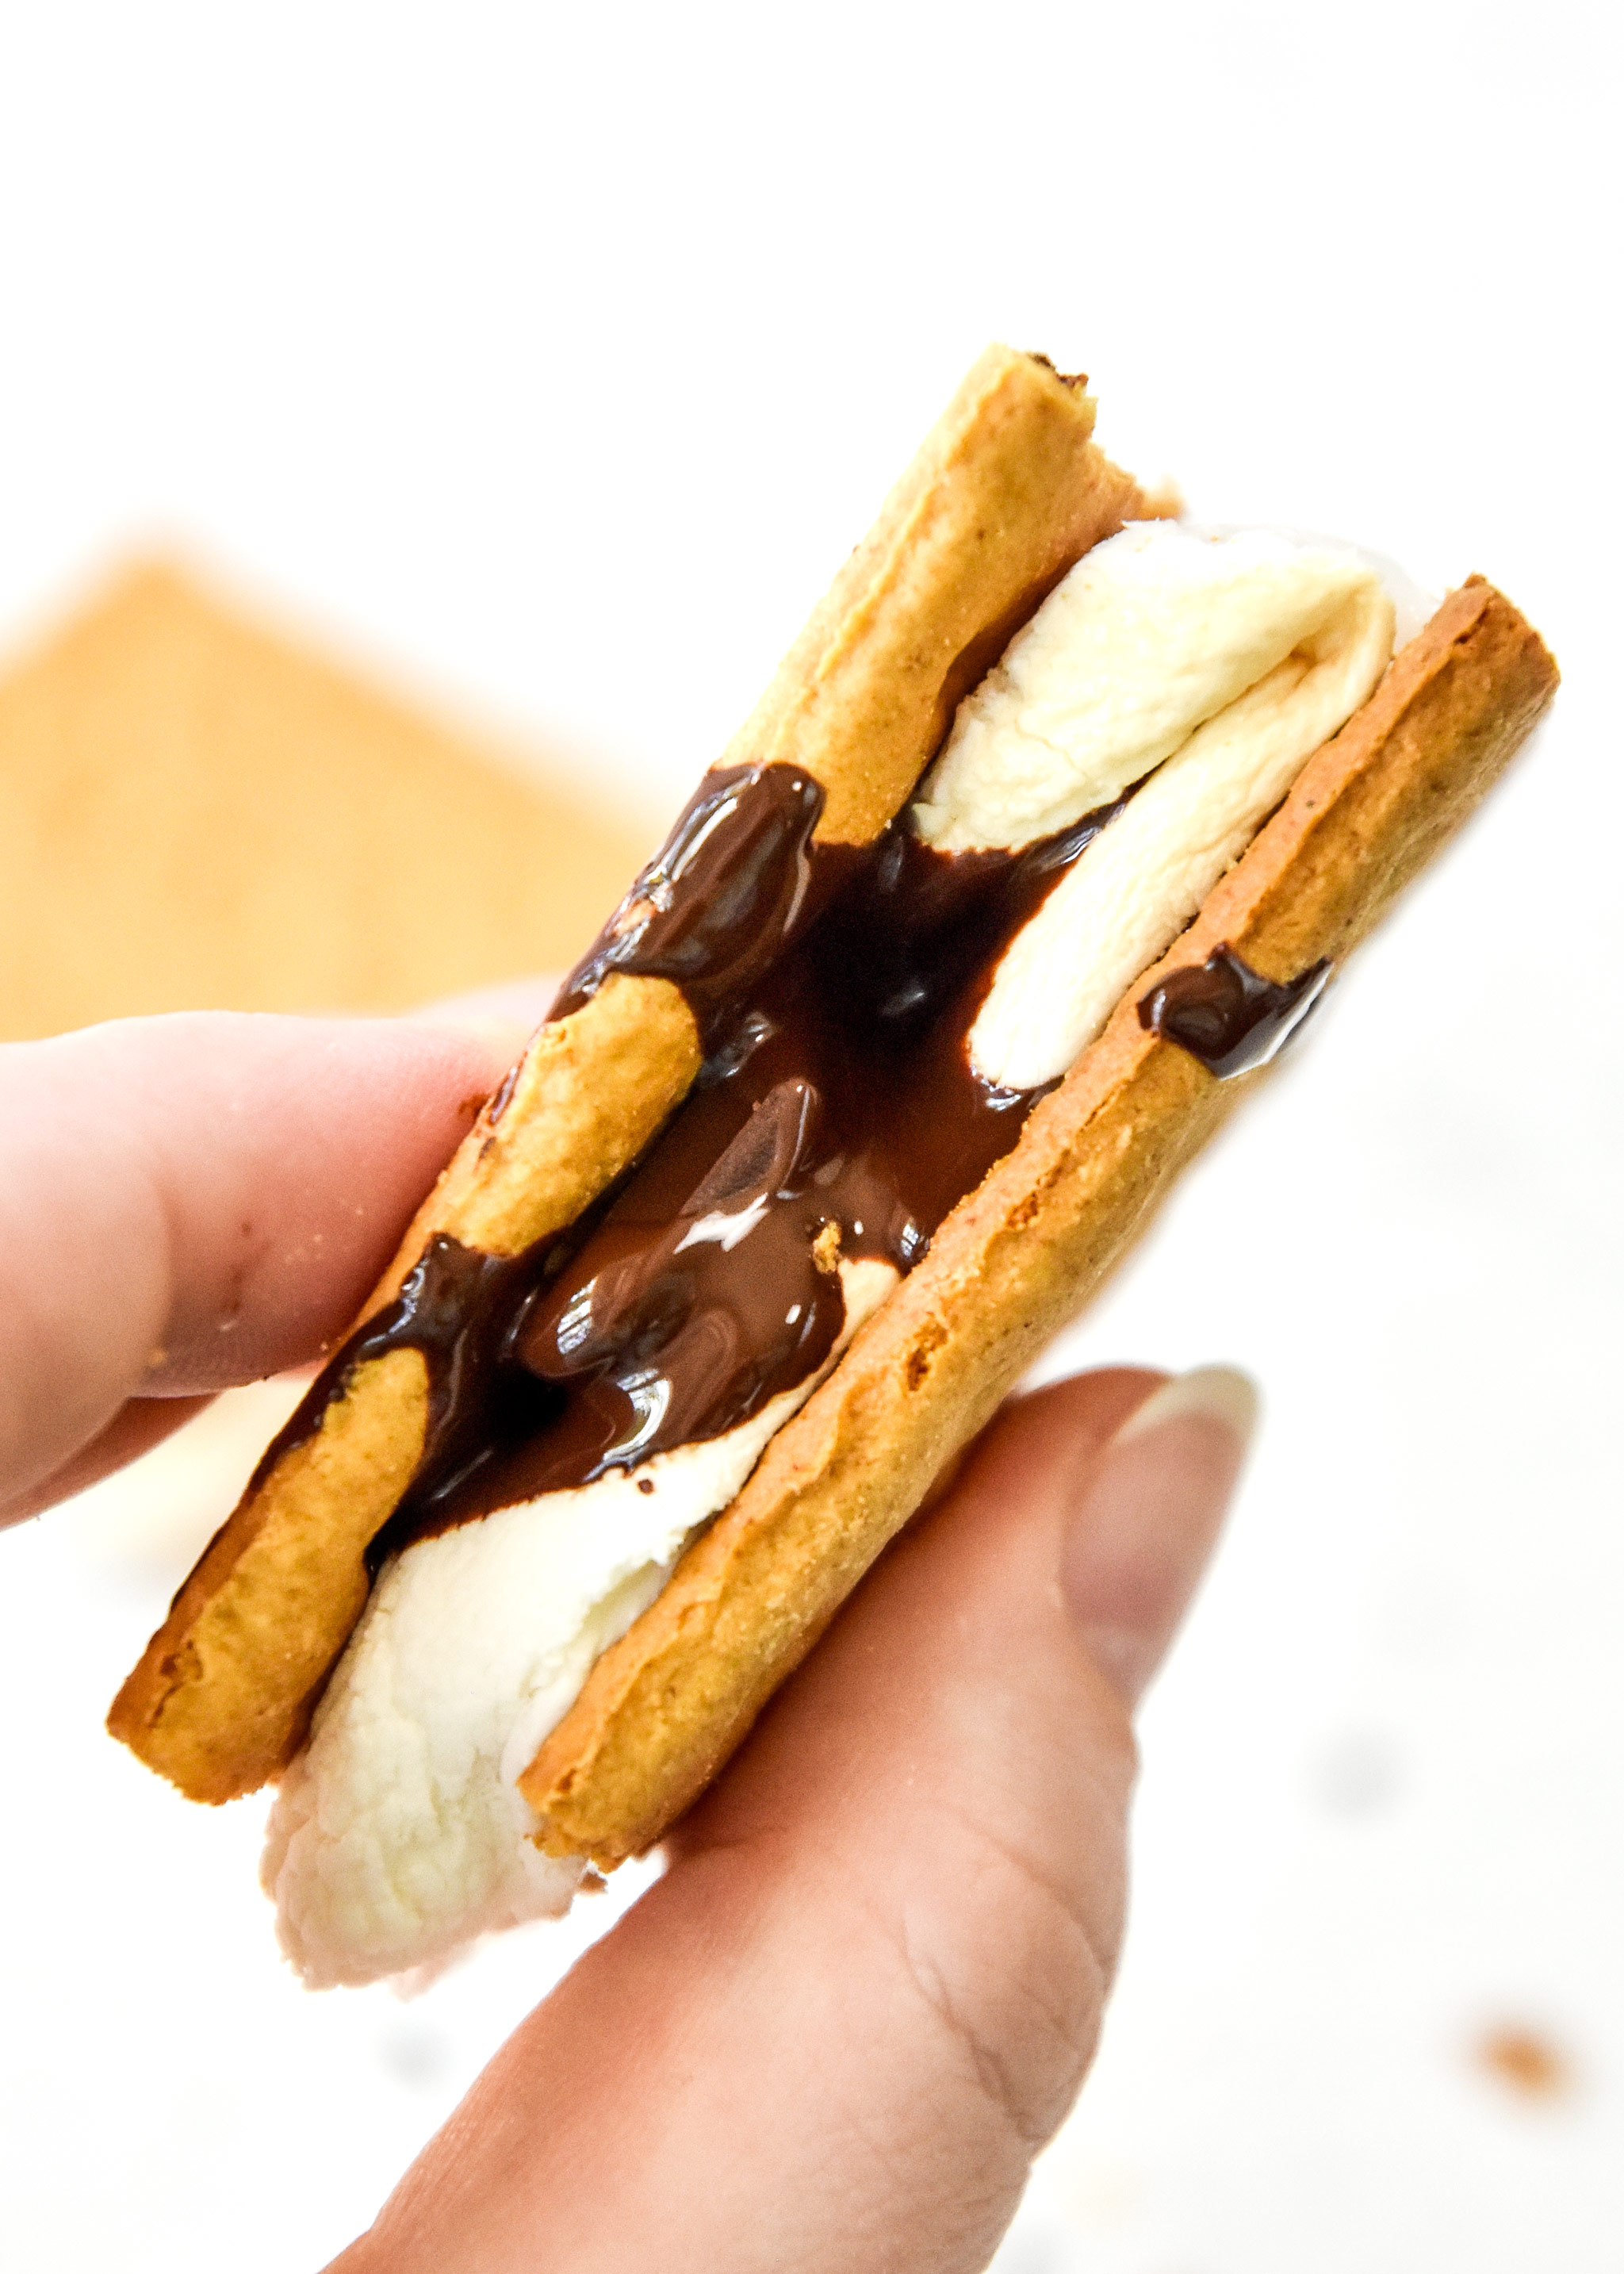 freshly made air fryer s'more with dripping chocolate in hand.